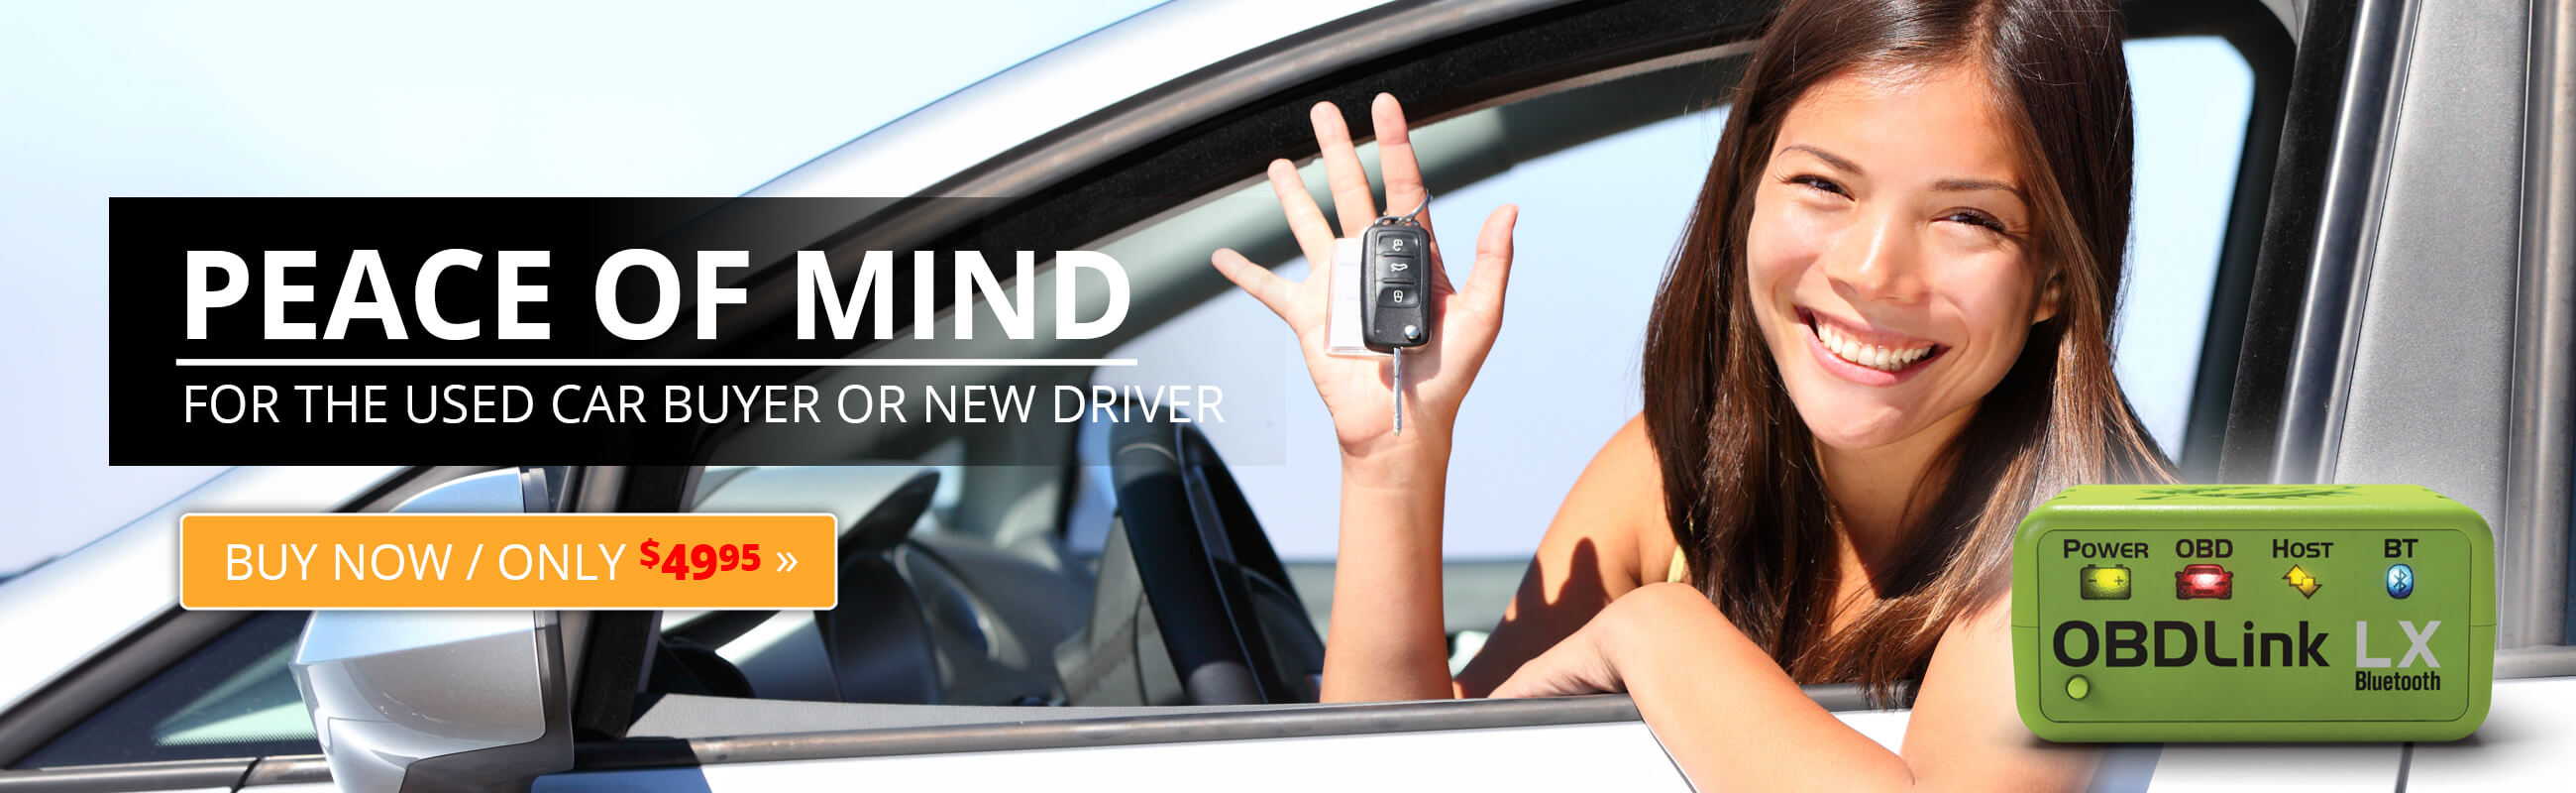 LX Bluetooth - Peace of Mind for the Used Car Buyer - Buy Now